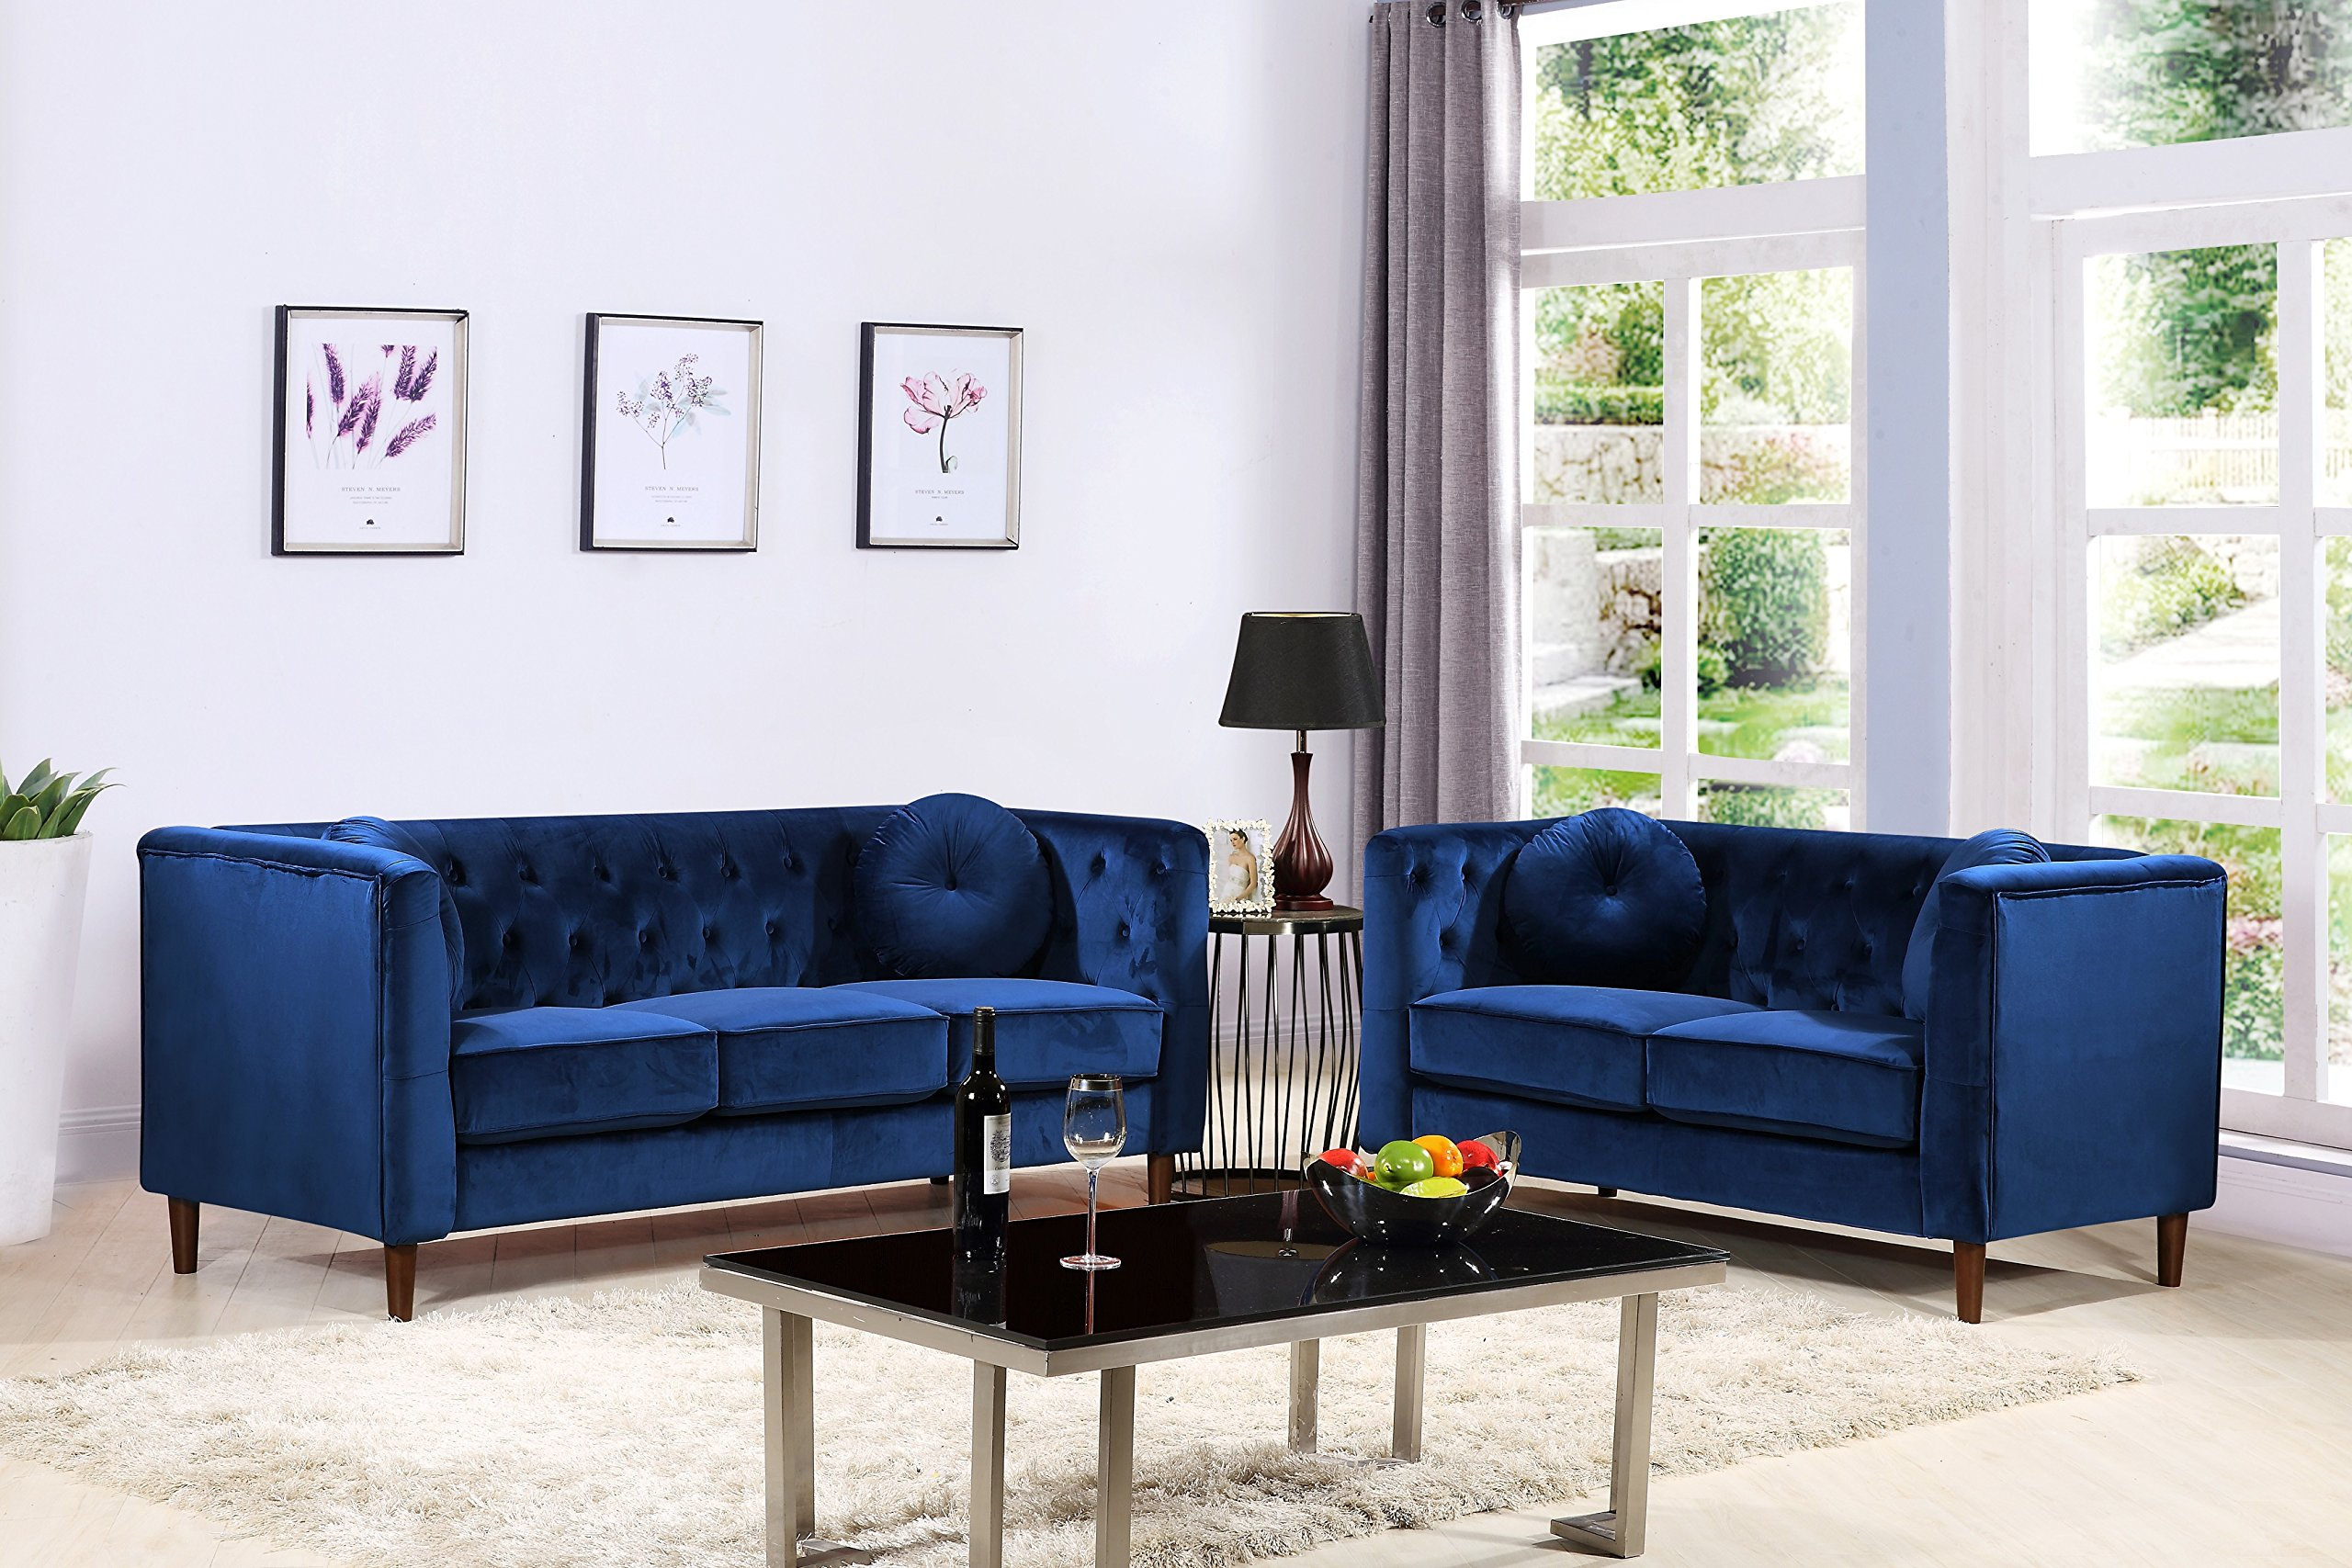 Fine Container Furniture Direct S5373 S Mid Century Classic Chesterfield Living Room Sofa Blue Pabps2019 Chair Design Images Pabps2019Com